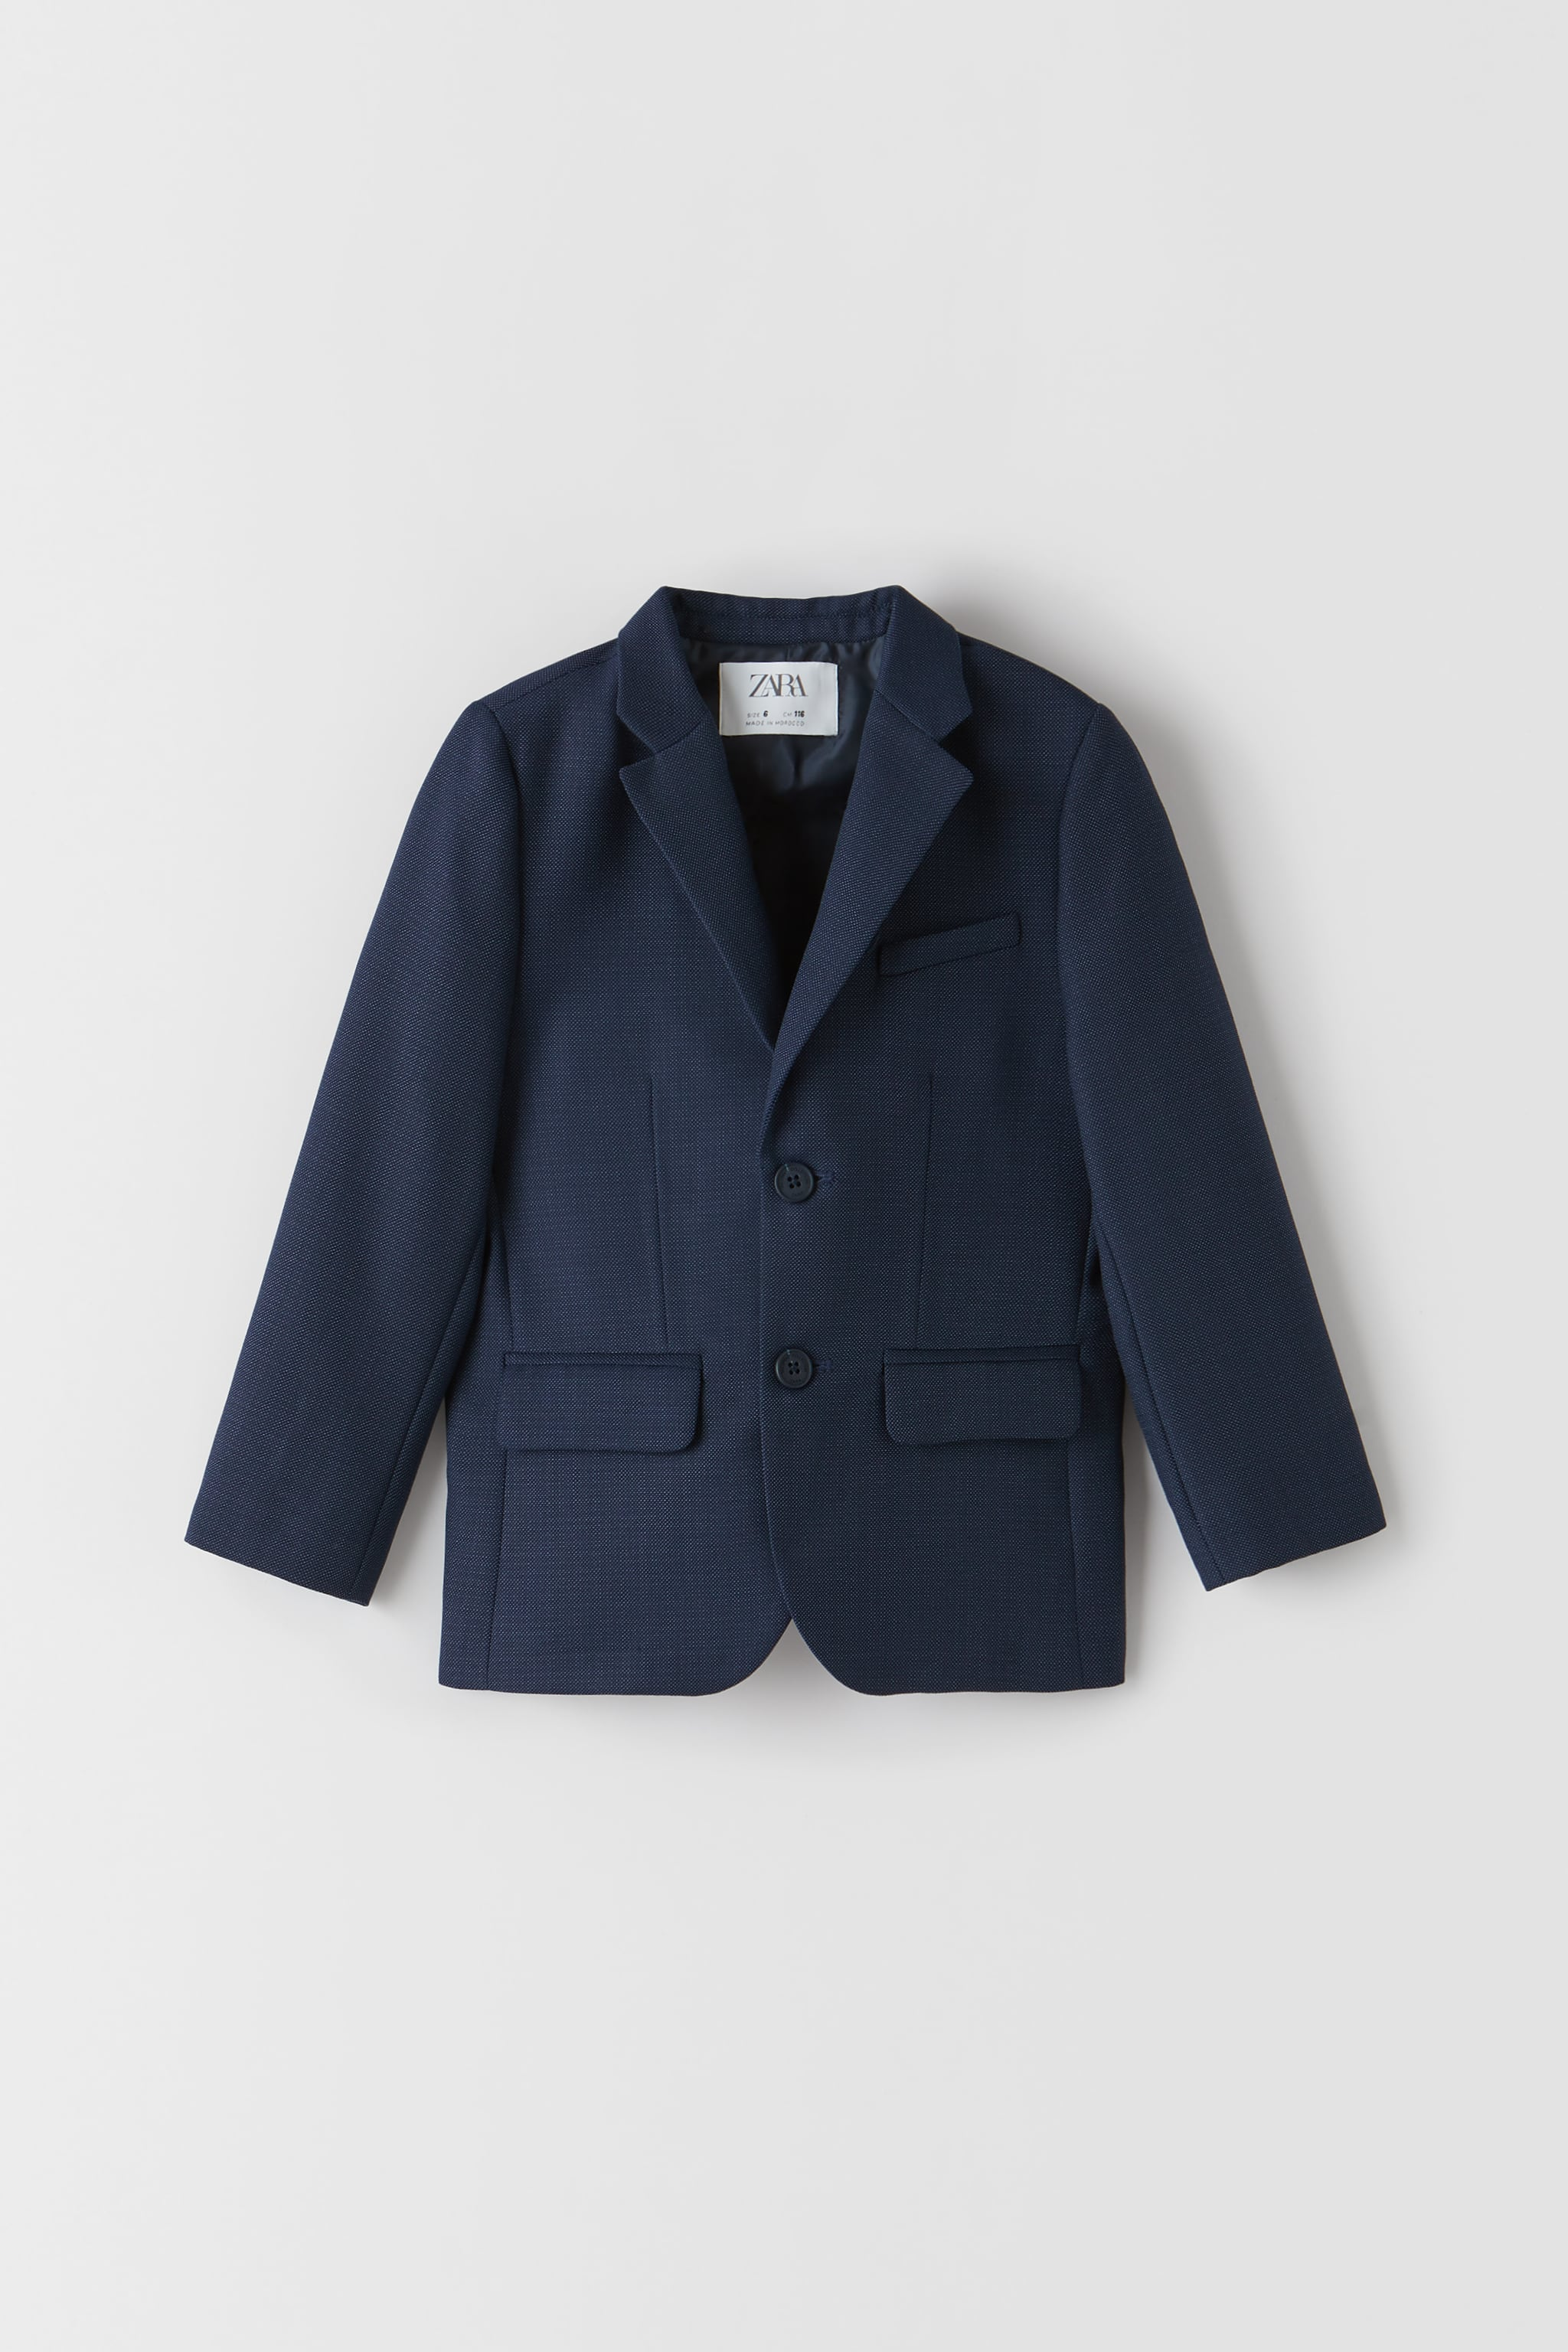 Zara TEXTURED WEAVE SUIT JACKET